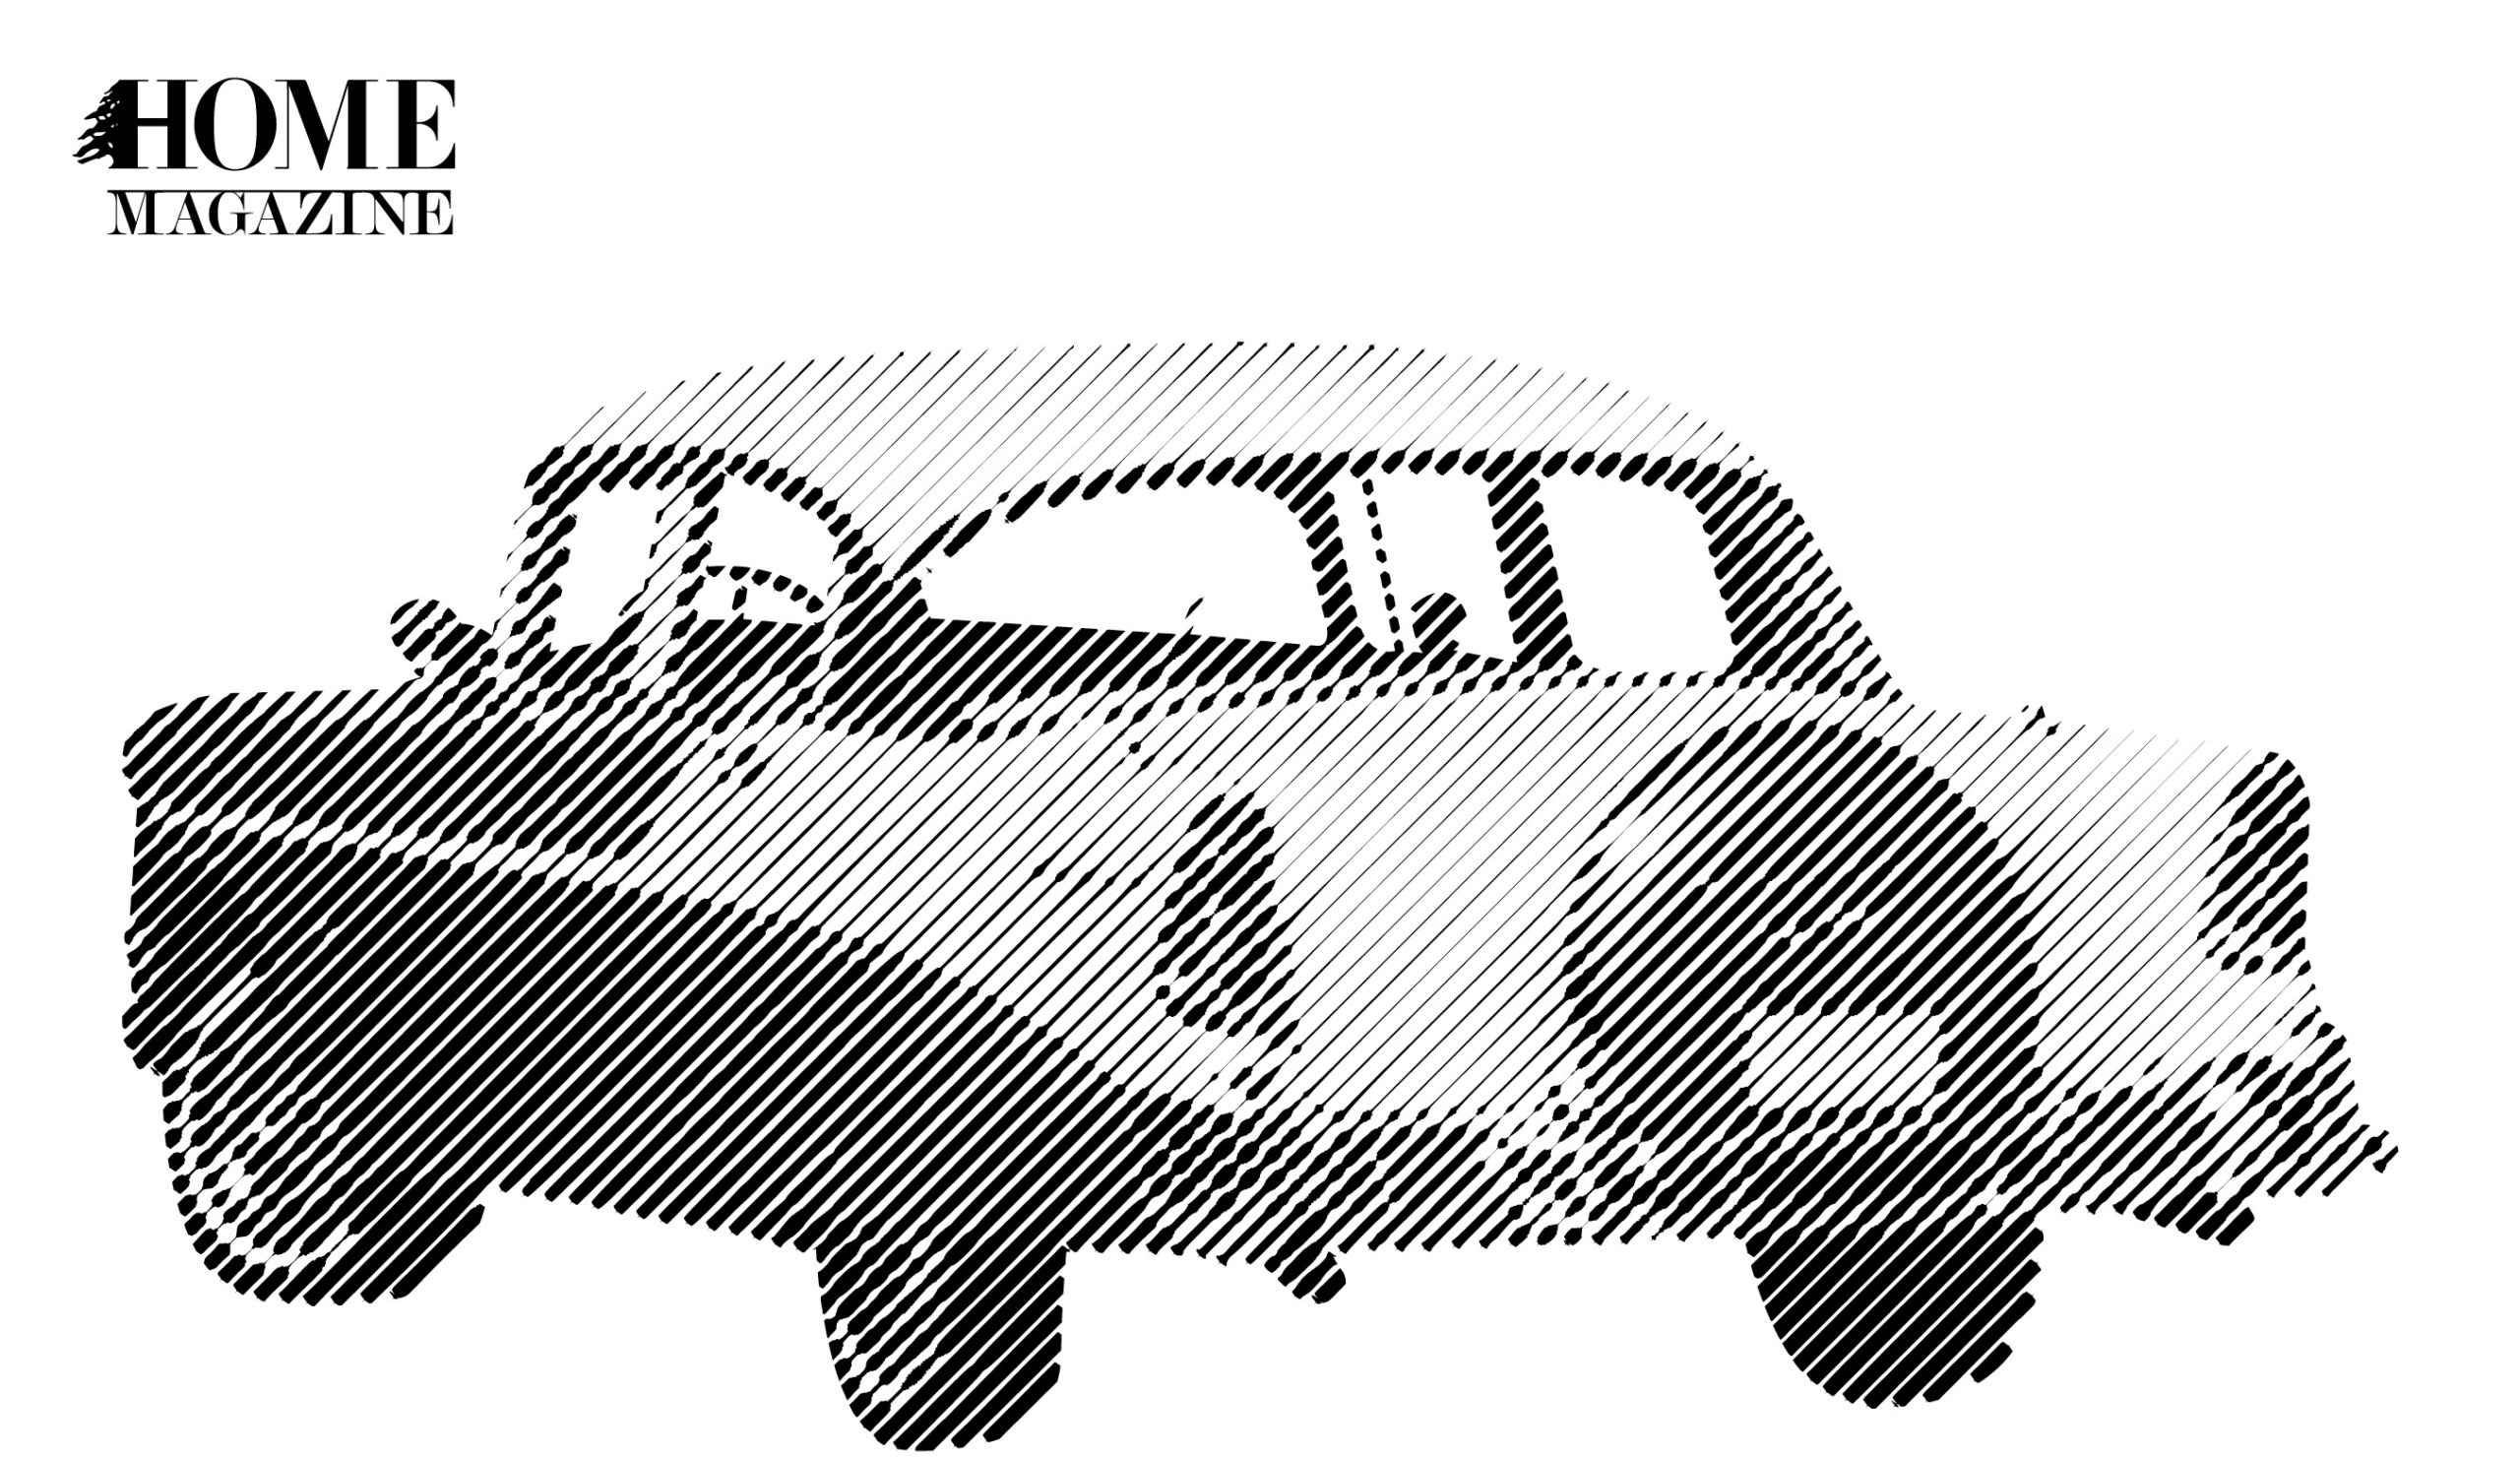 A car in black and white